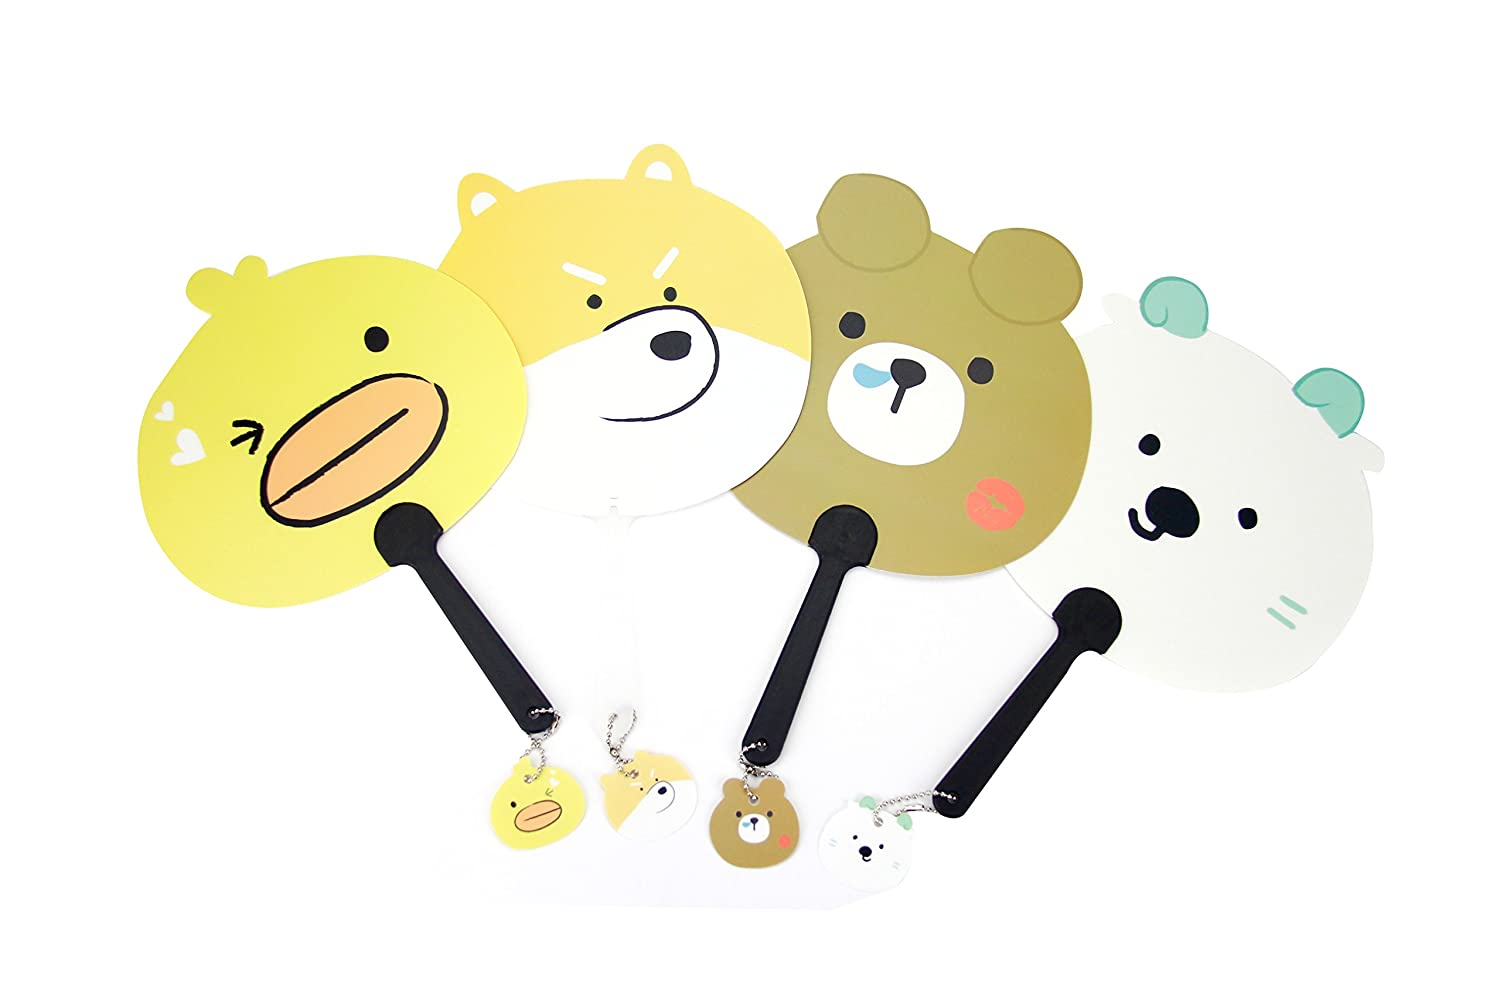 EIKS Plastic Carton Cute Animal Face Fans for Concert Camping Outdoor Party